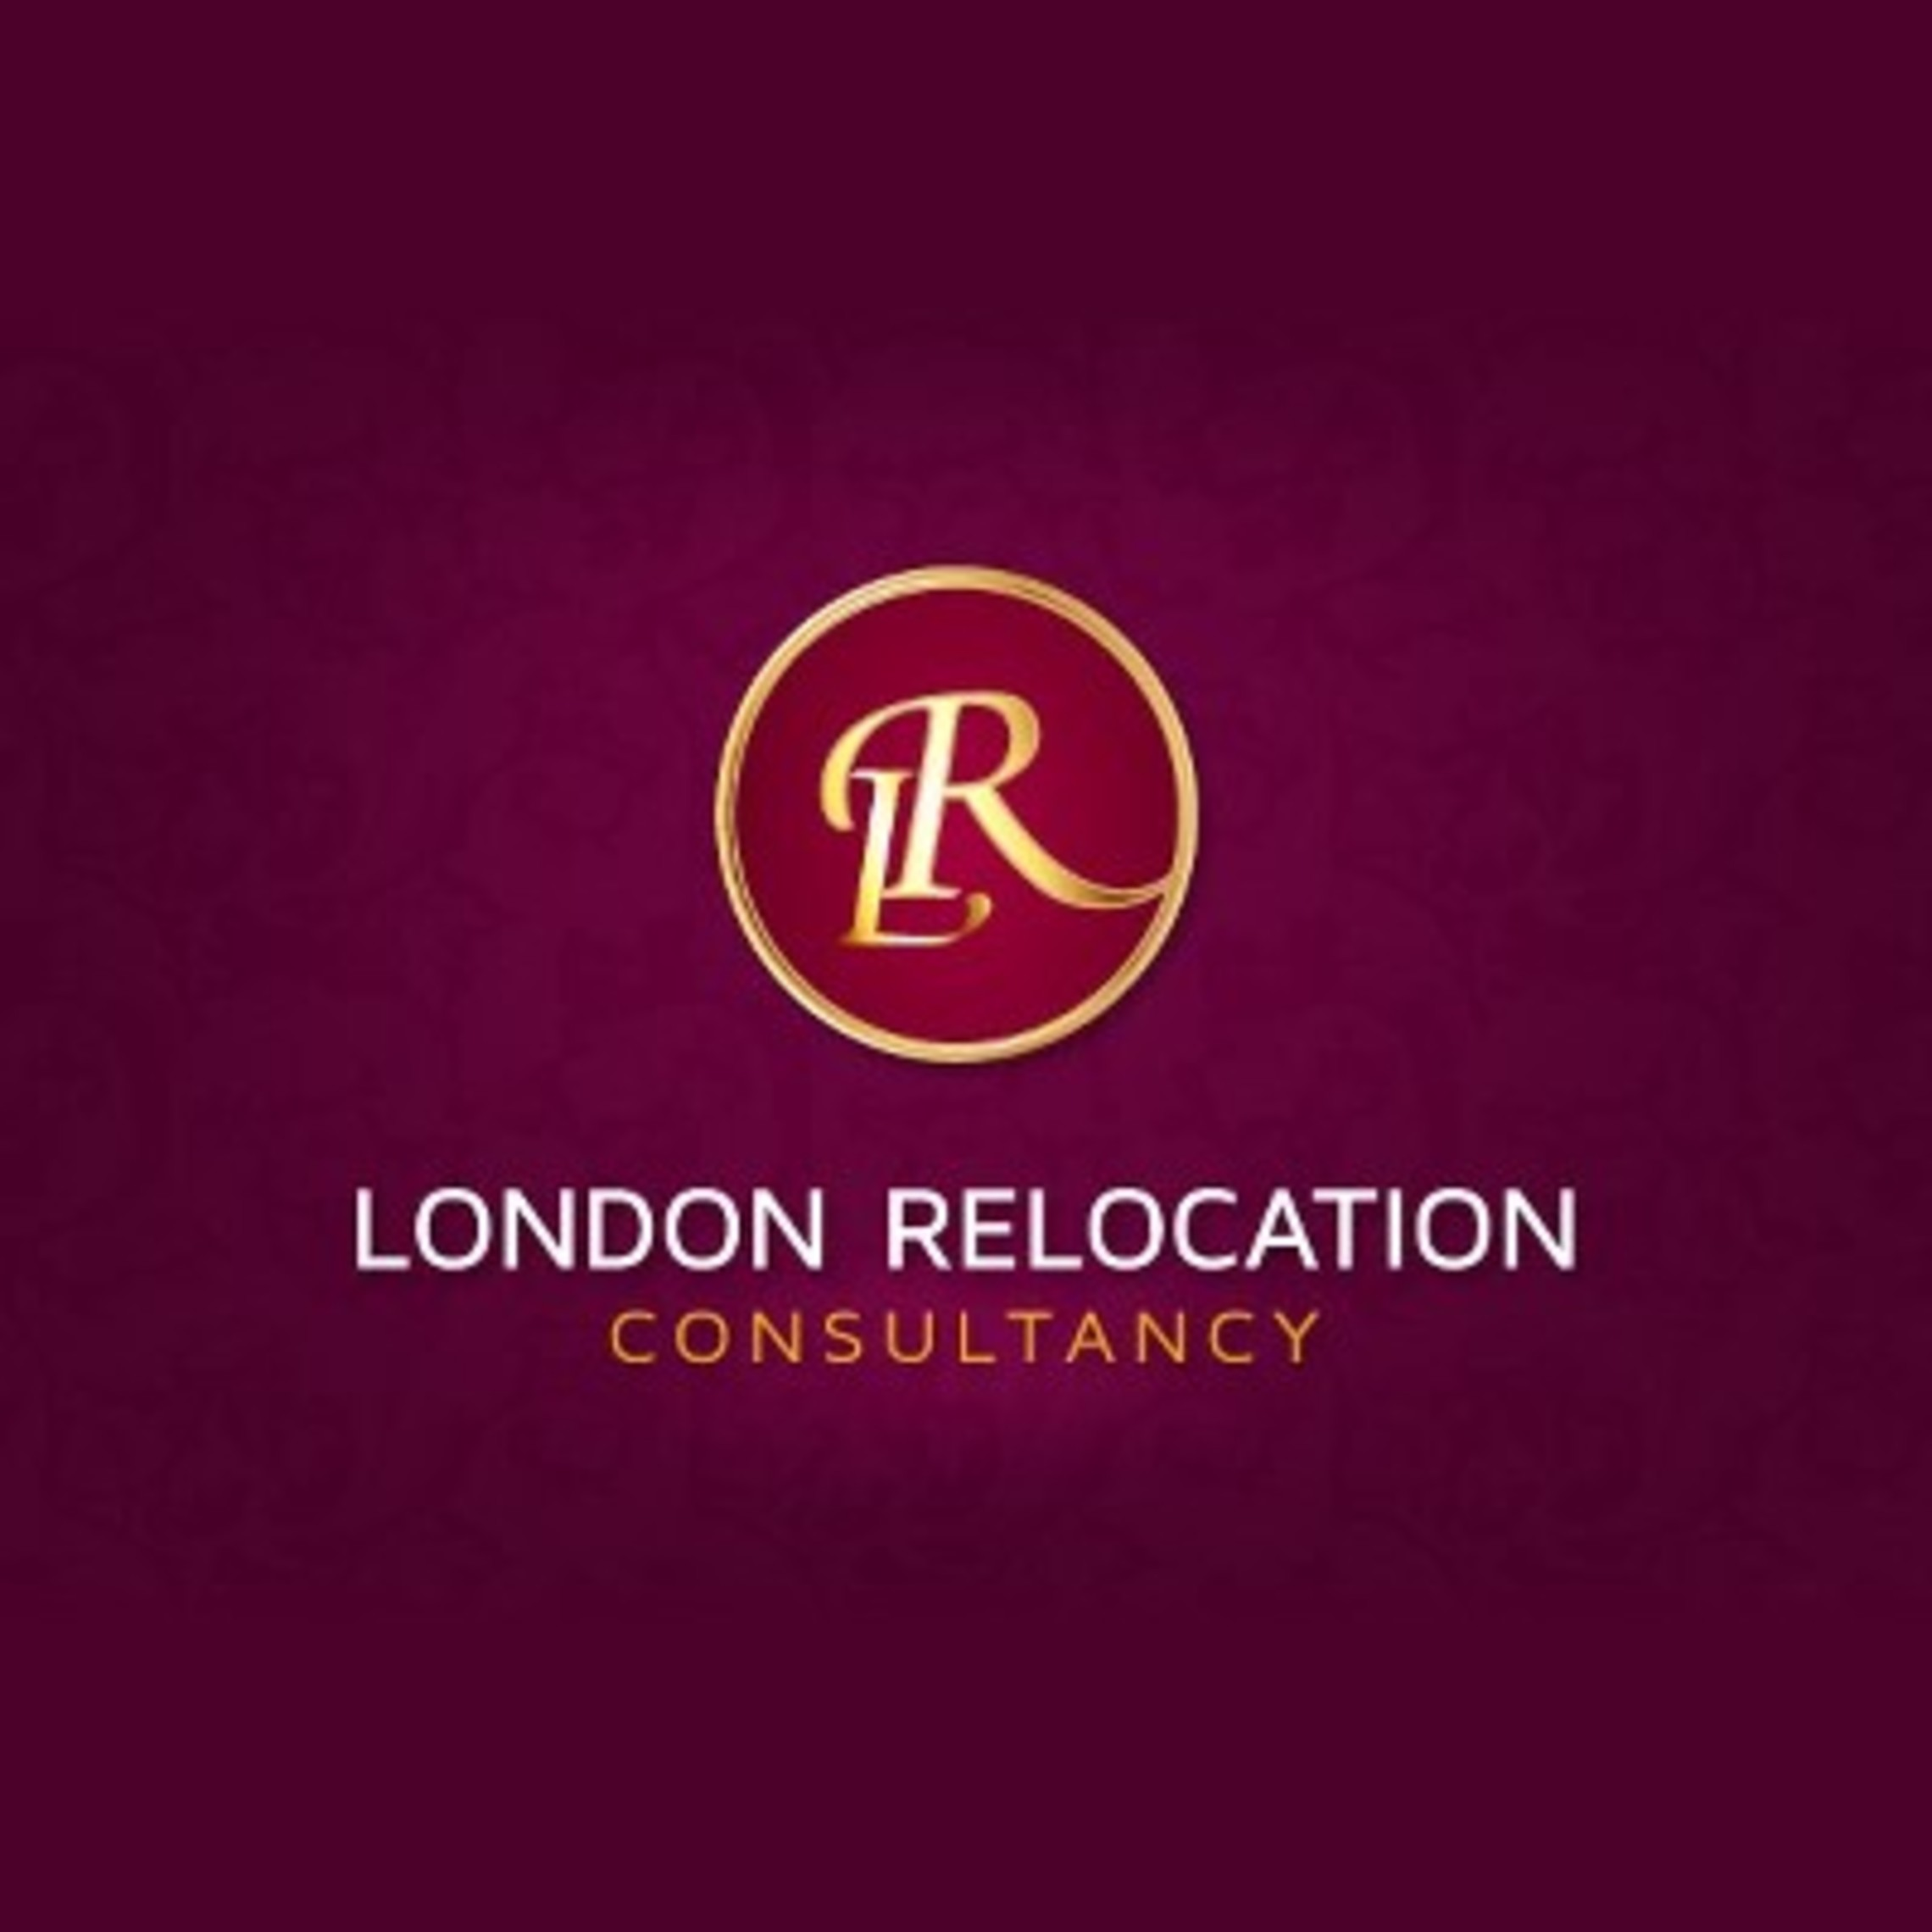 london relocation consultancy- company logo